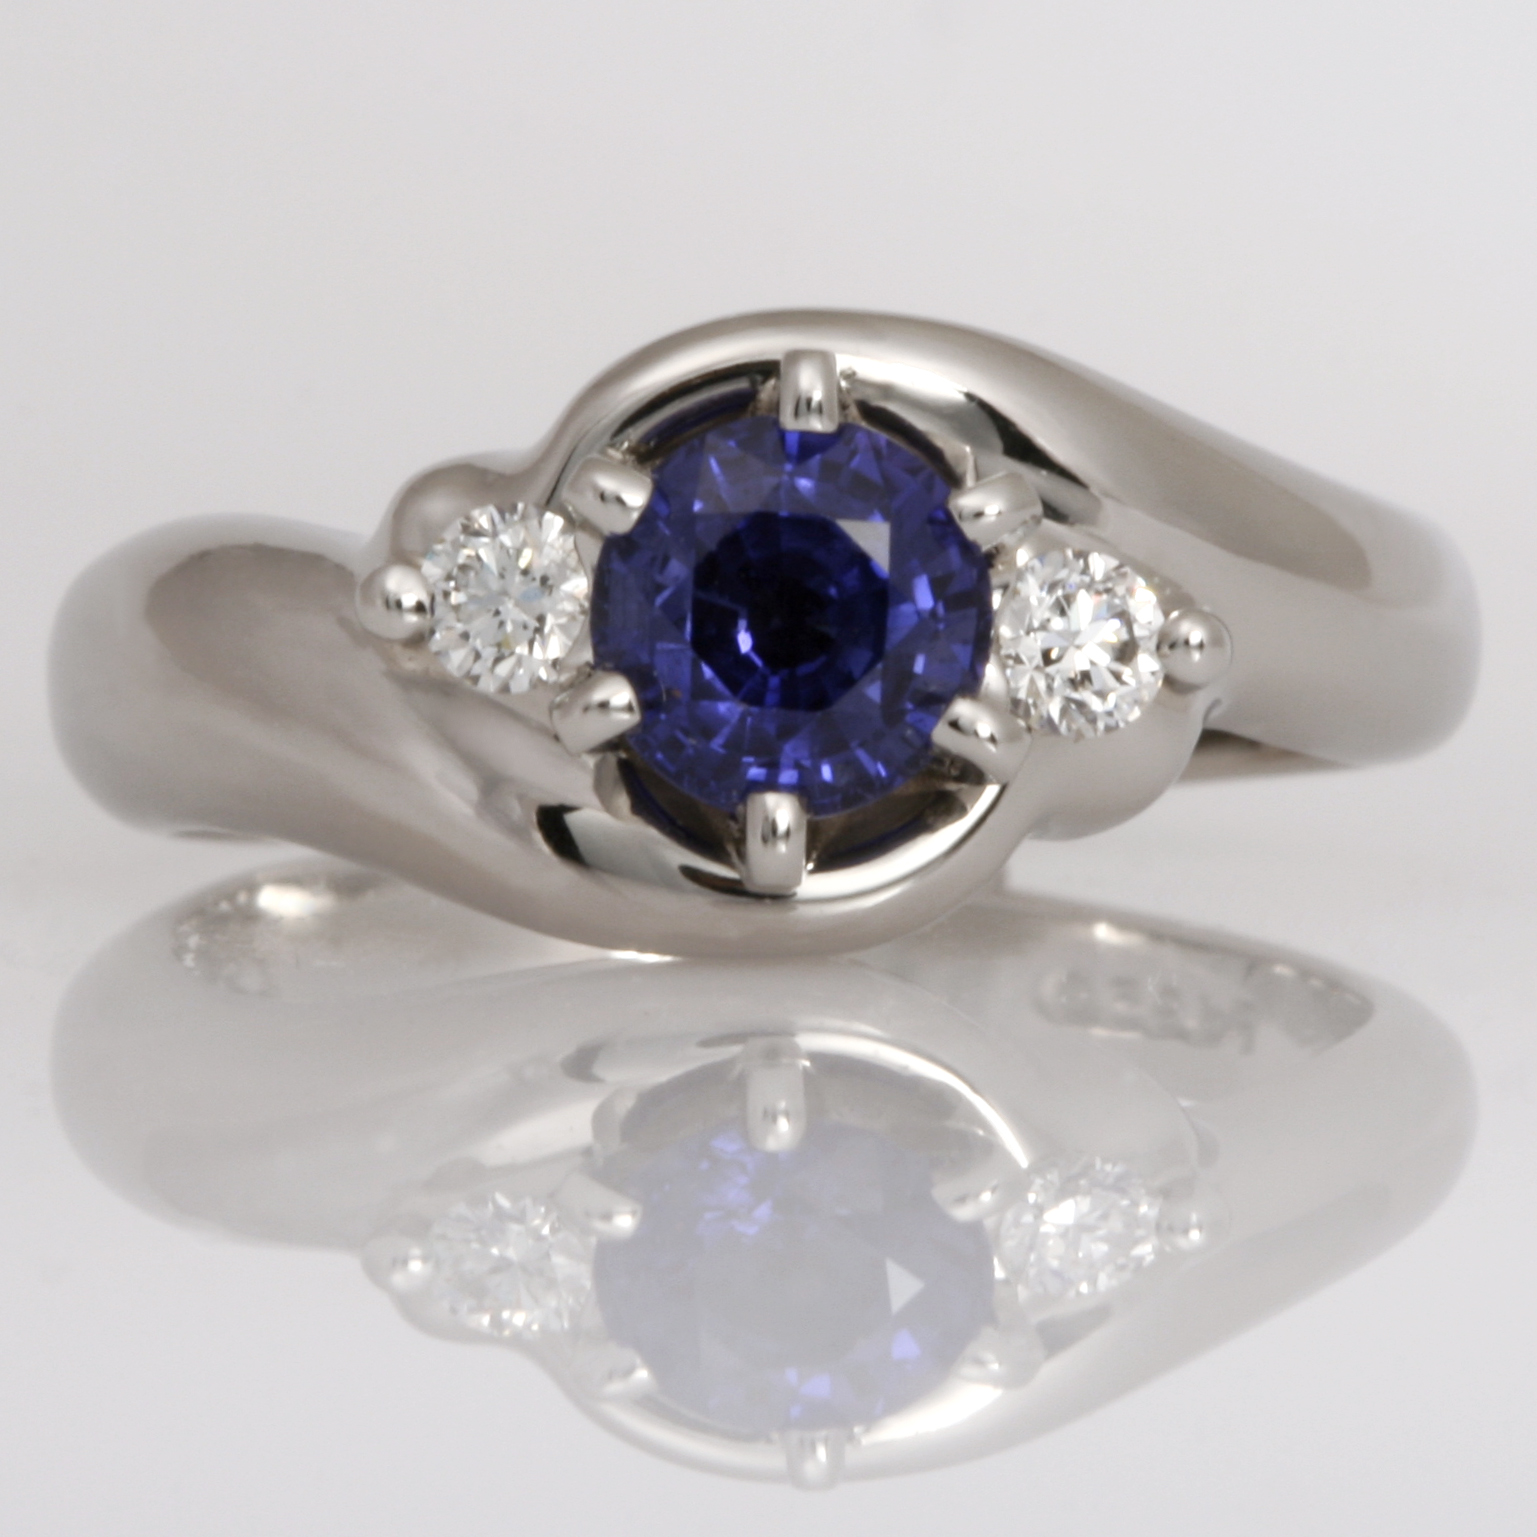 Handmade palladium Ceylon sapphire and diamond ring